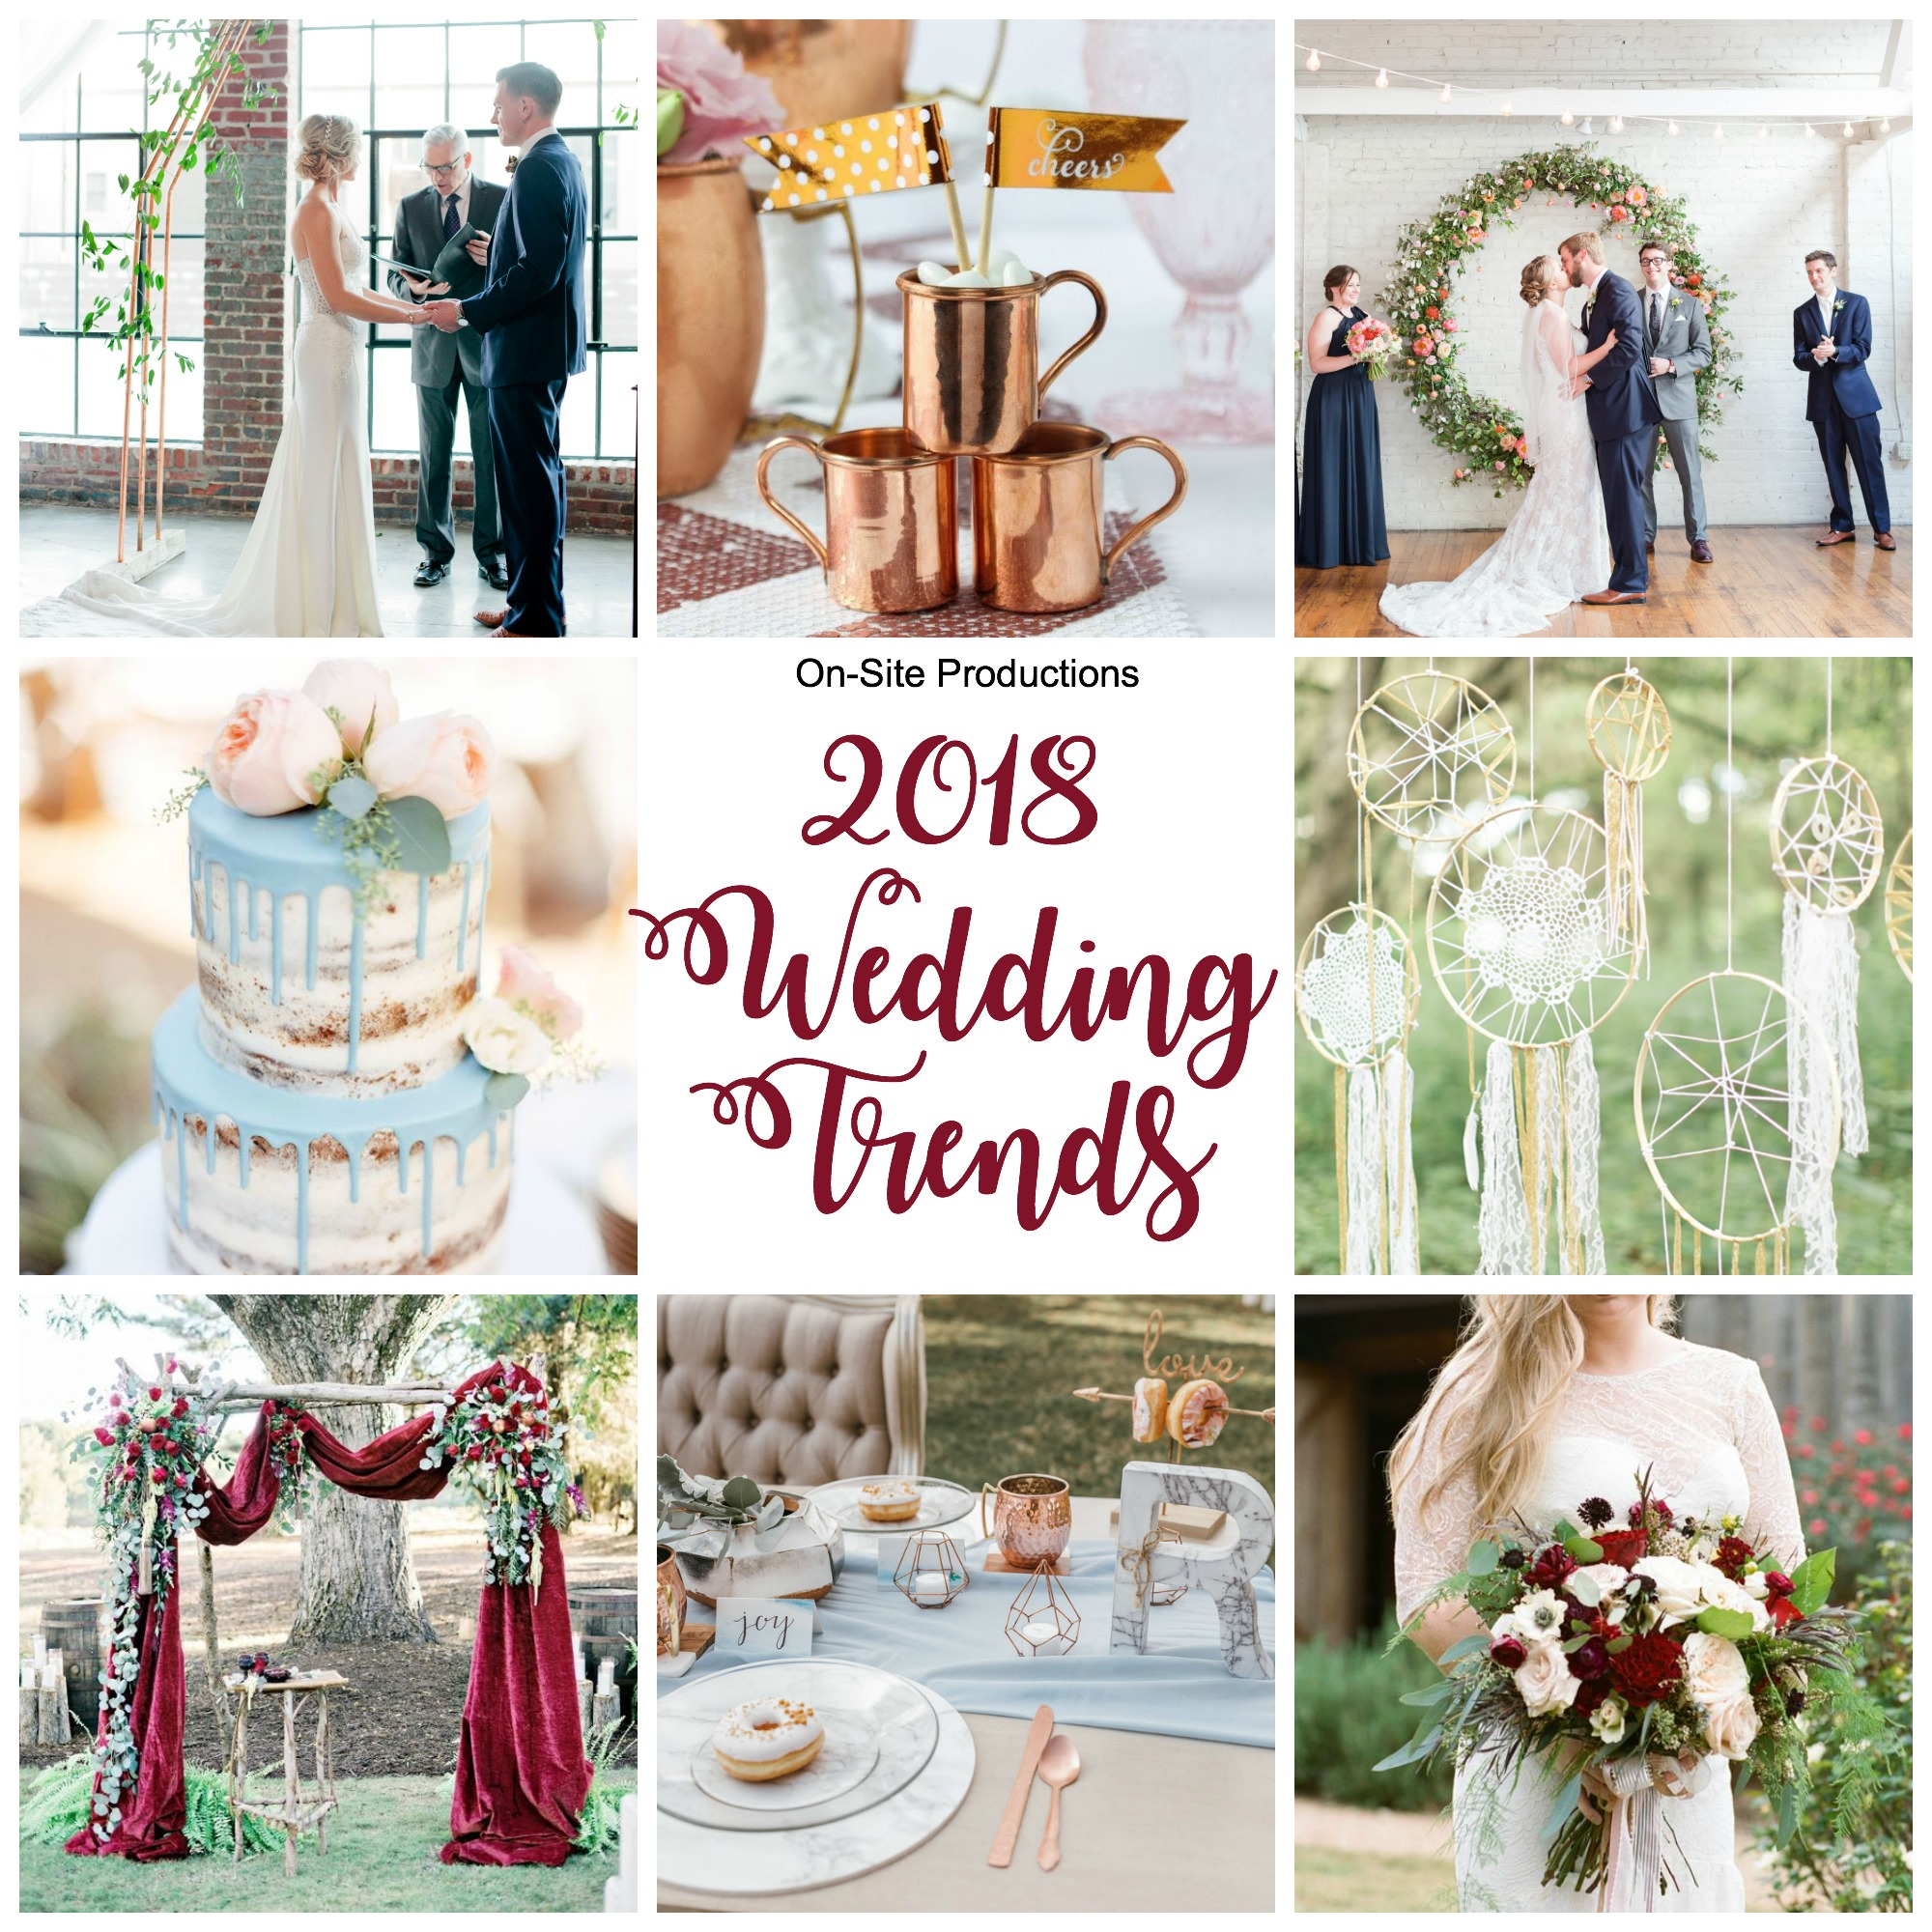 2018 Wedding Trends | Wedding DJ, Wedding Lights, Wedding Drapes ...